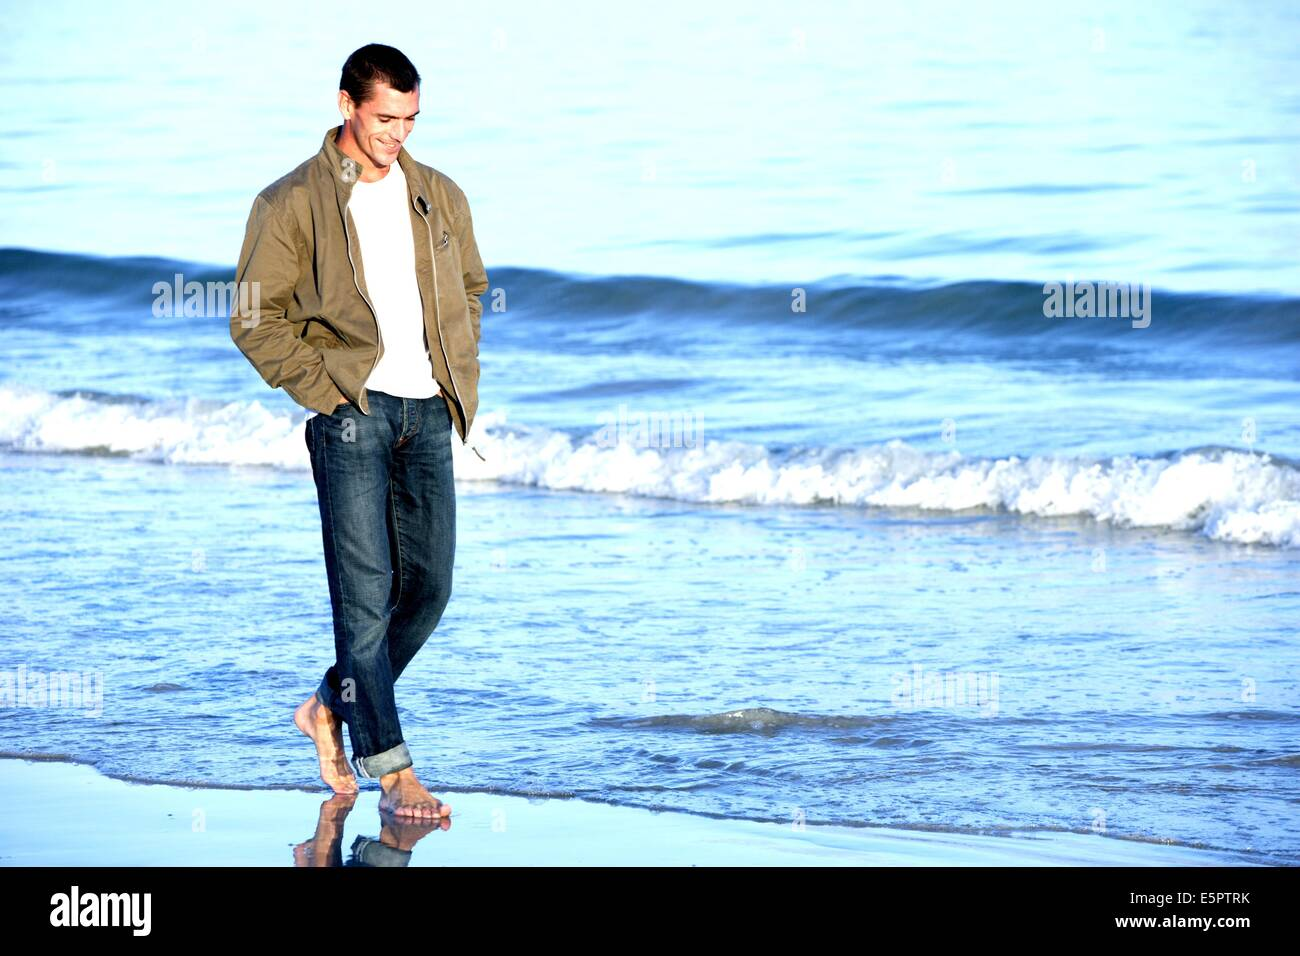 35-year-old man walking on the beach. - Stock Image